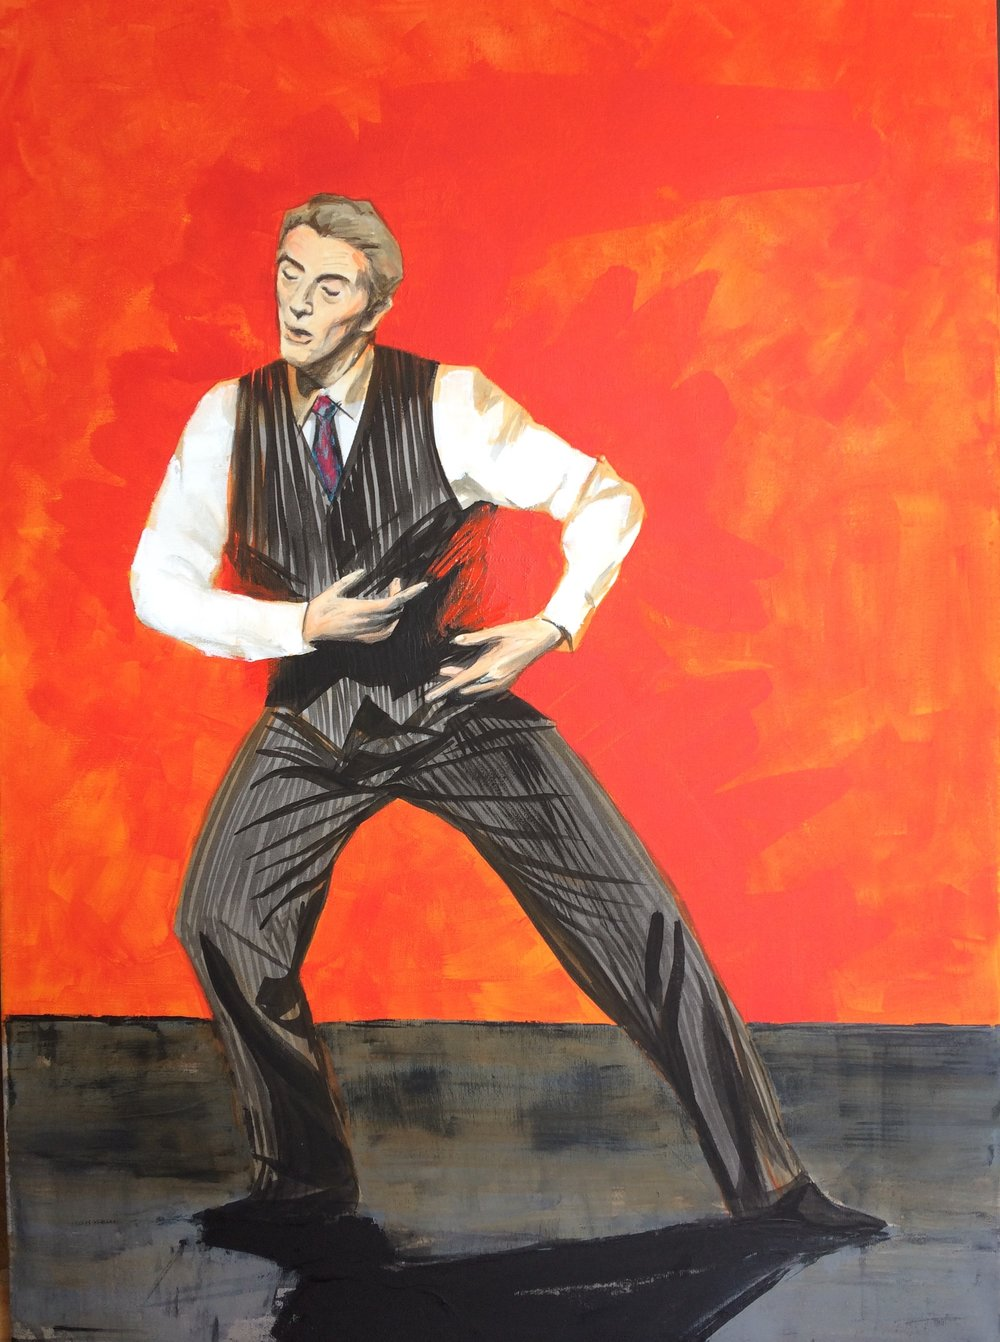 Lutz, Male Dancer - on Pina. (Lutz Förster.) Acrylic on canvas, 70x50 cm. Available.